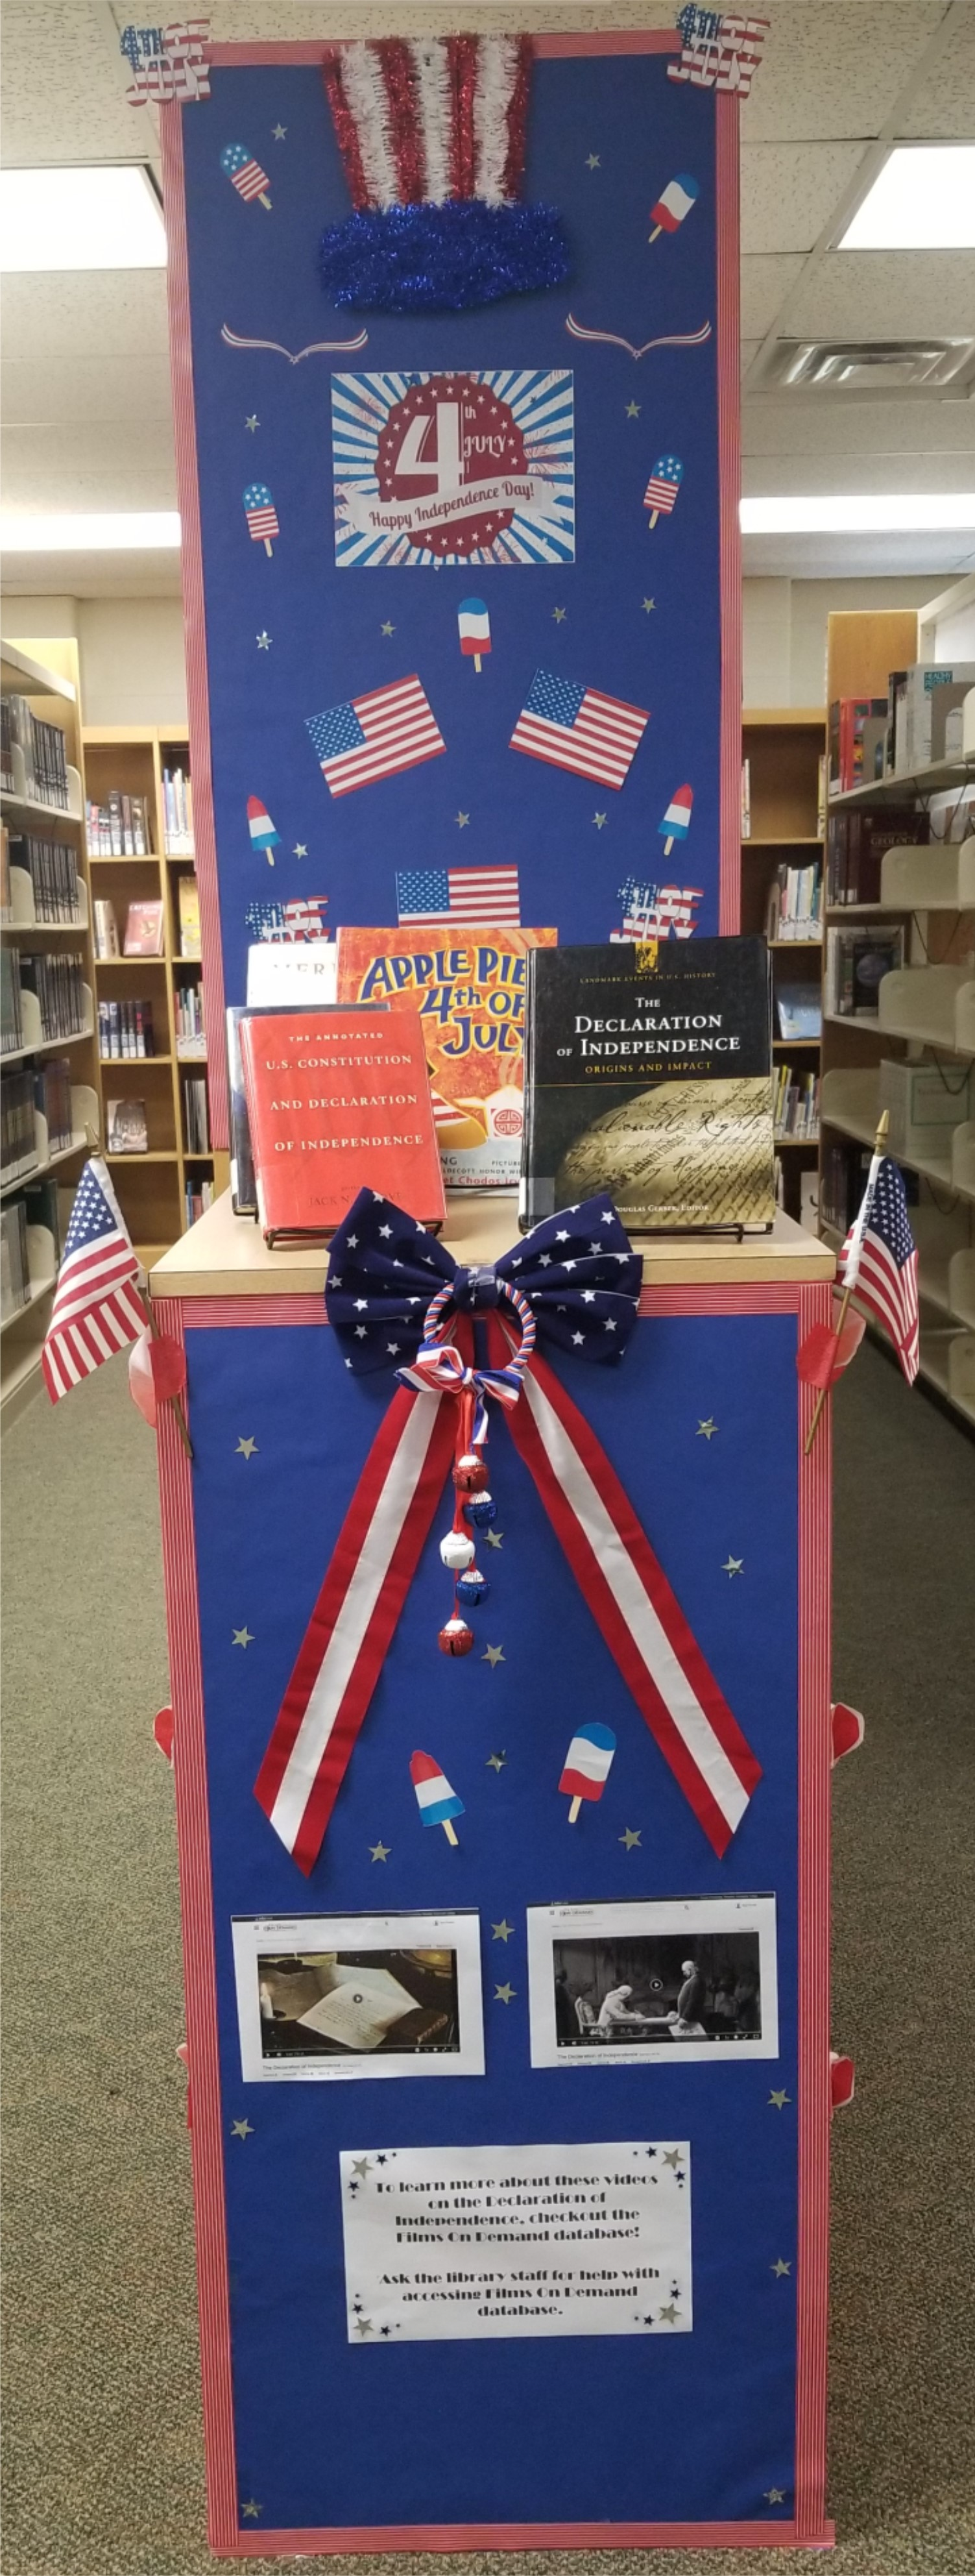 Image:  Library Display, July 4th USA Independence Day